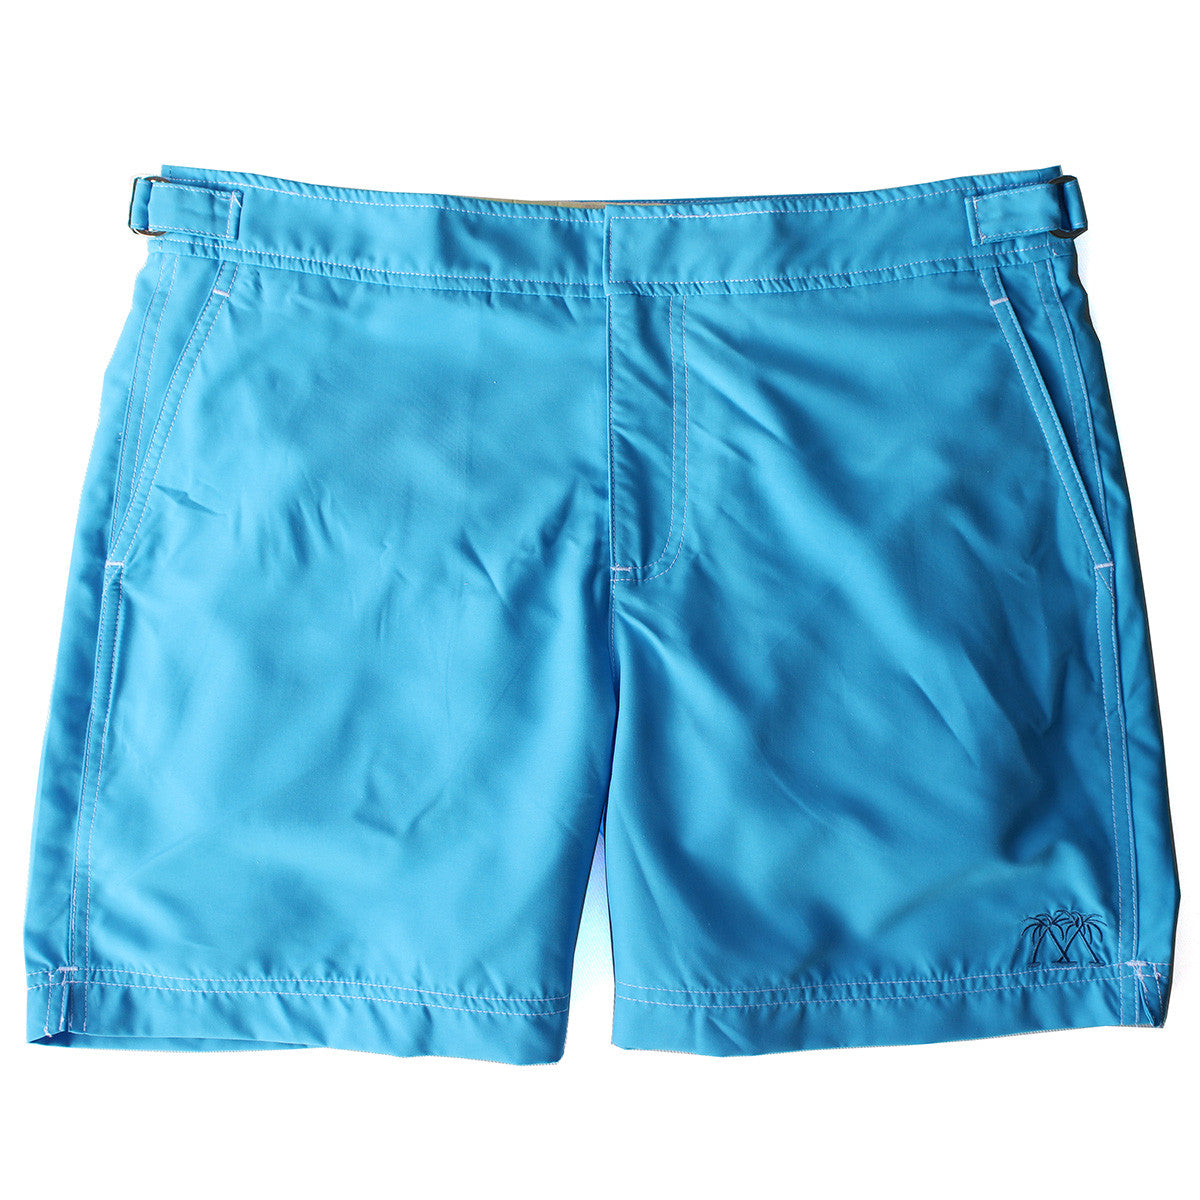 Mens Beach Shorts (Turquoise)